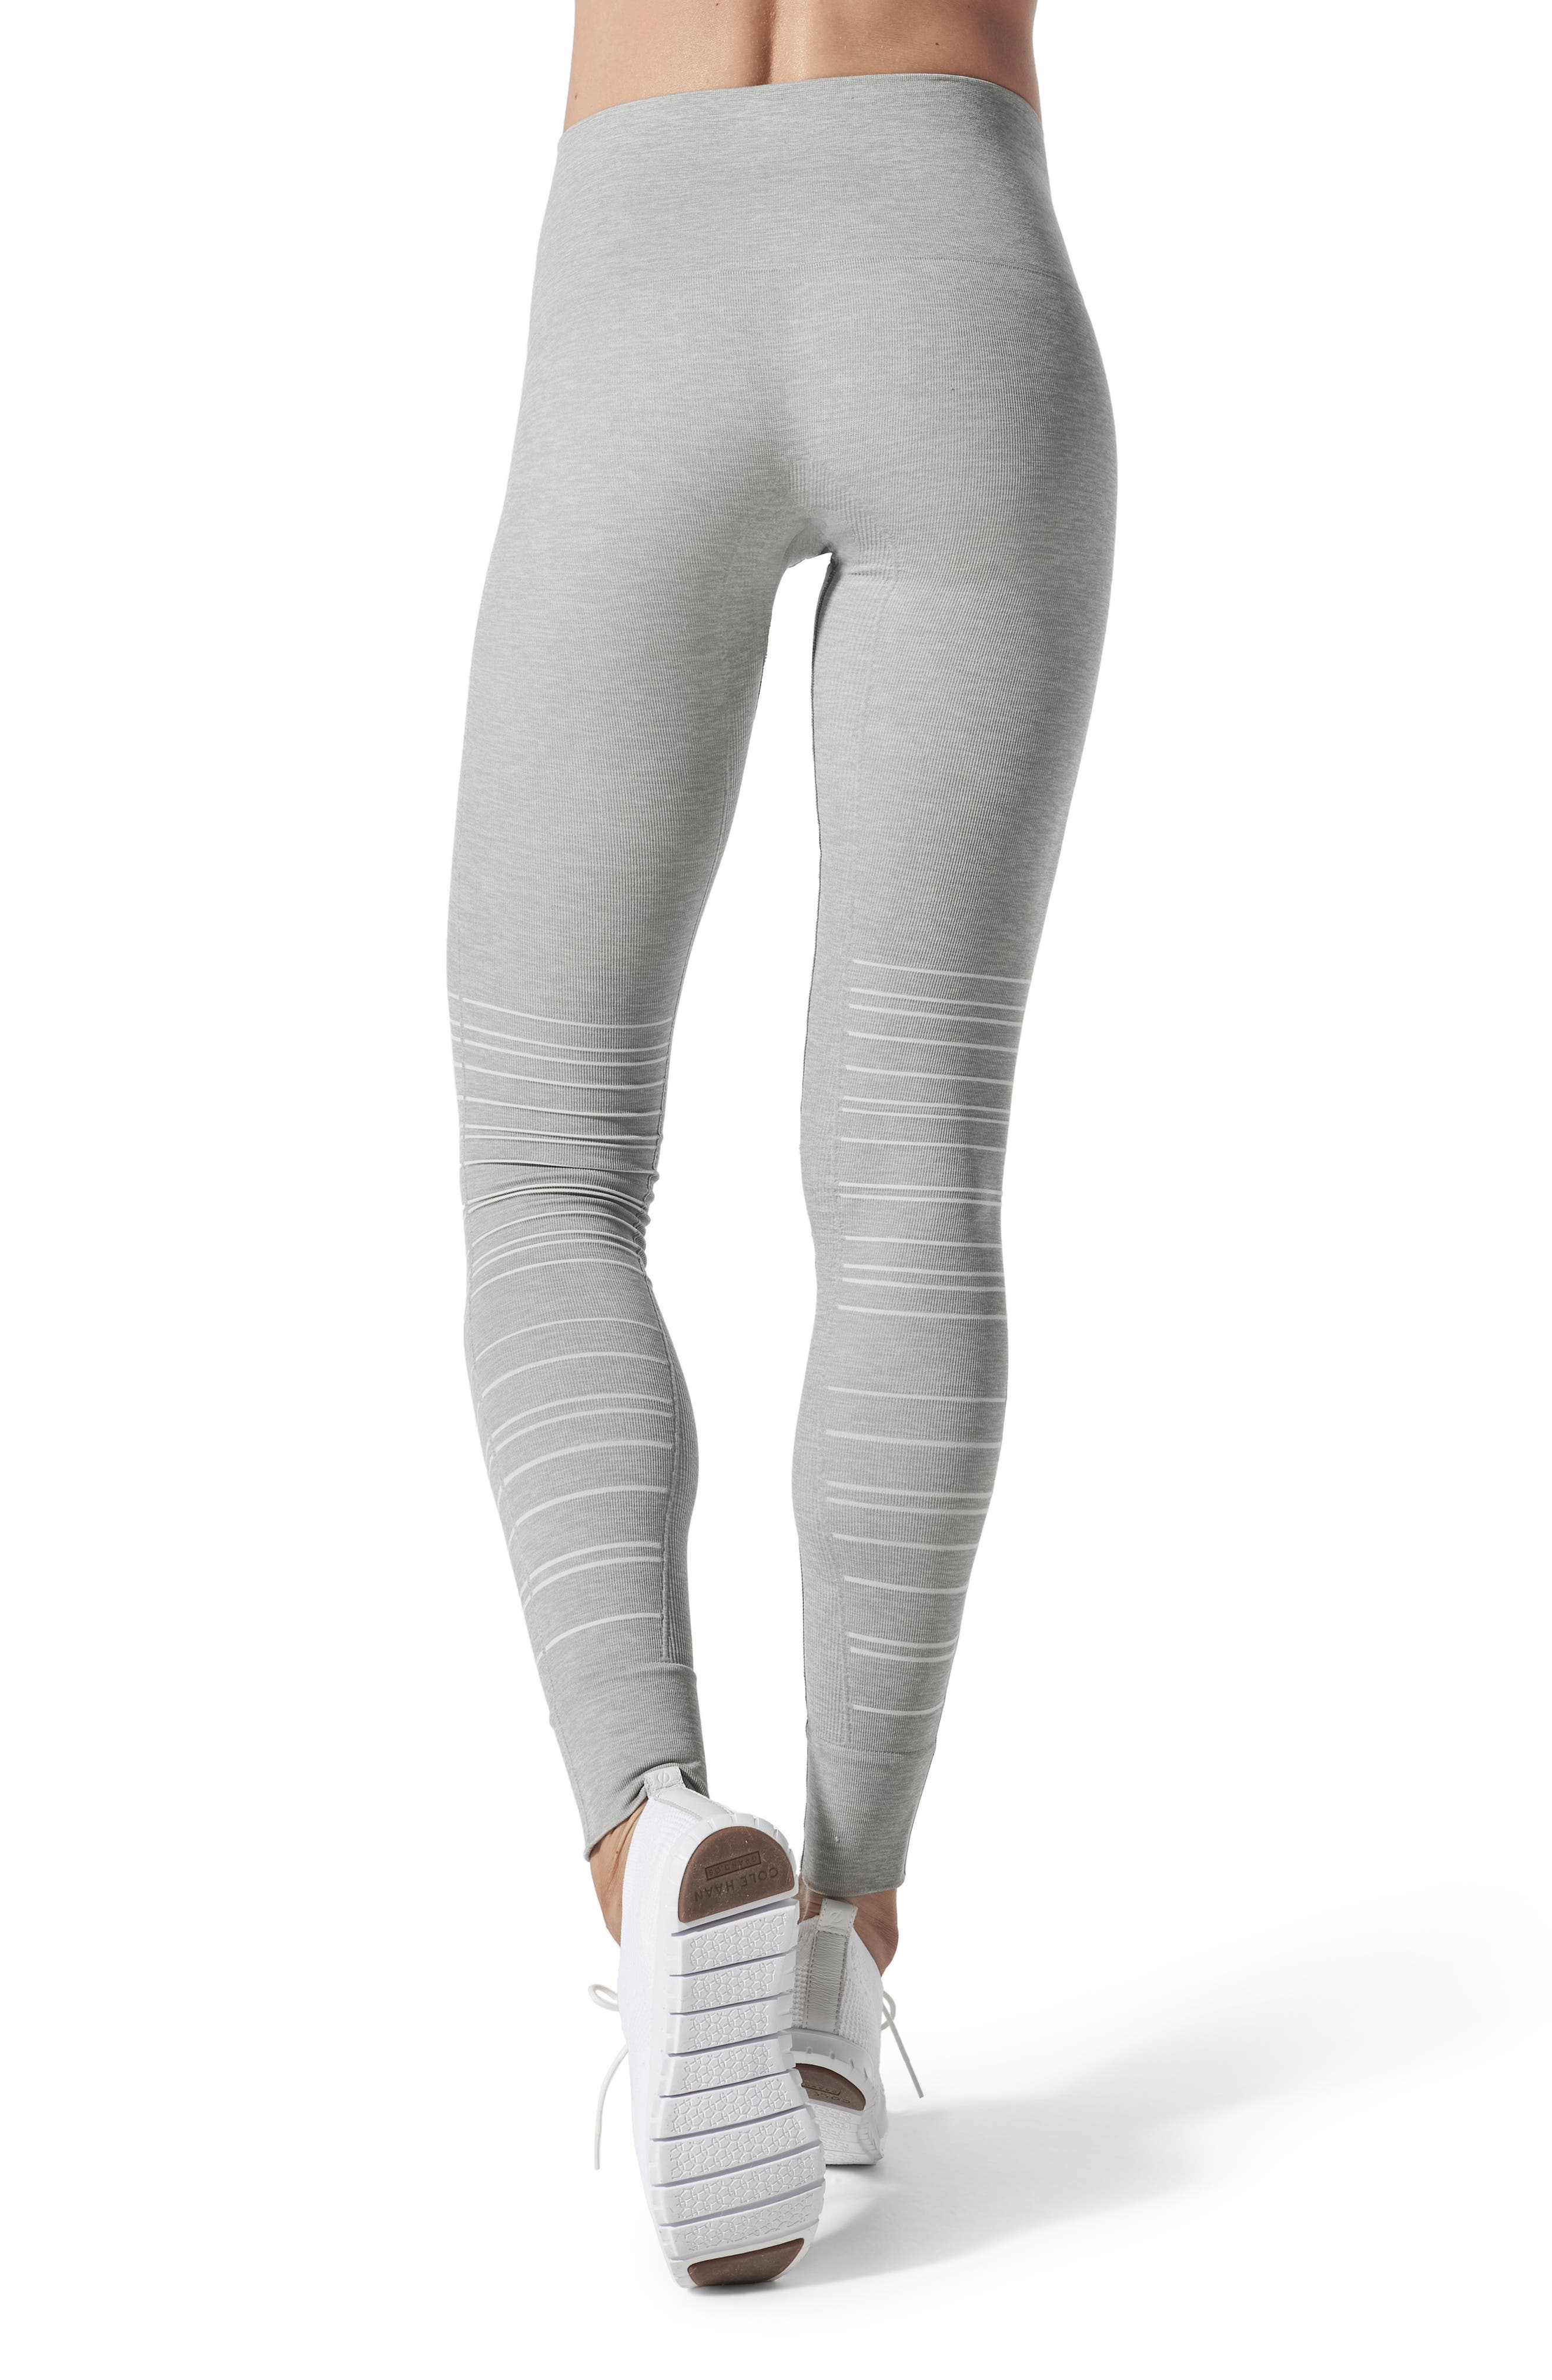 SportSupport<sup>®</sup> Hipster Cuffed Support Maternity/Postpartum Leggings,                             Alternate thumbnail 2, color,                             DOVE GREY